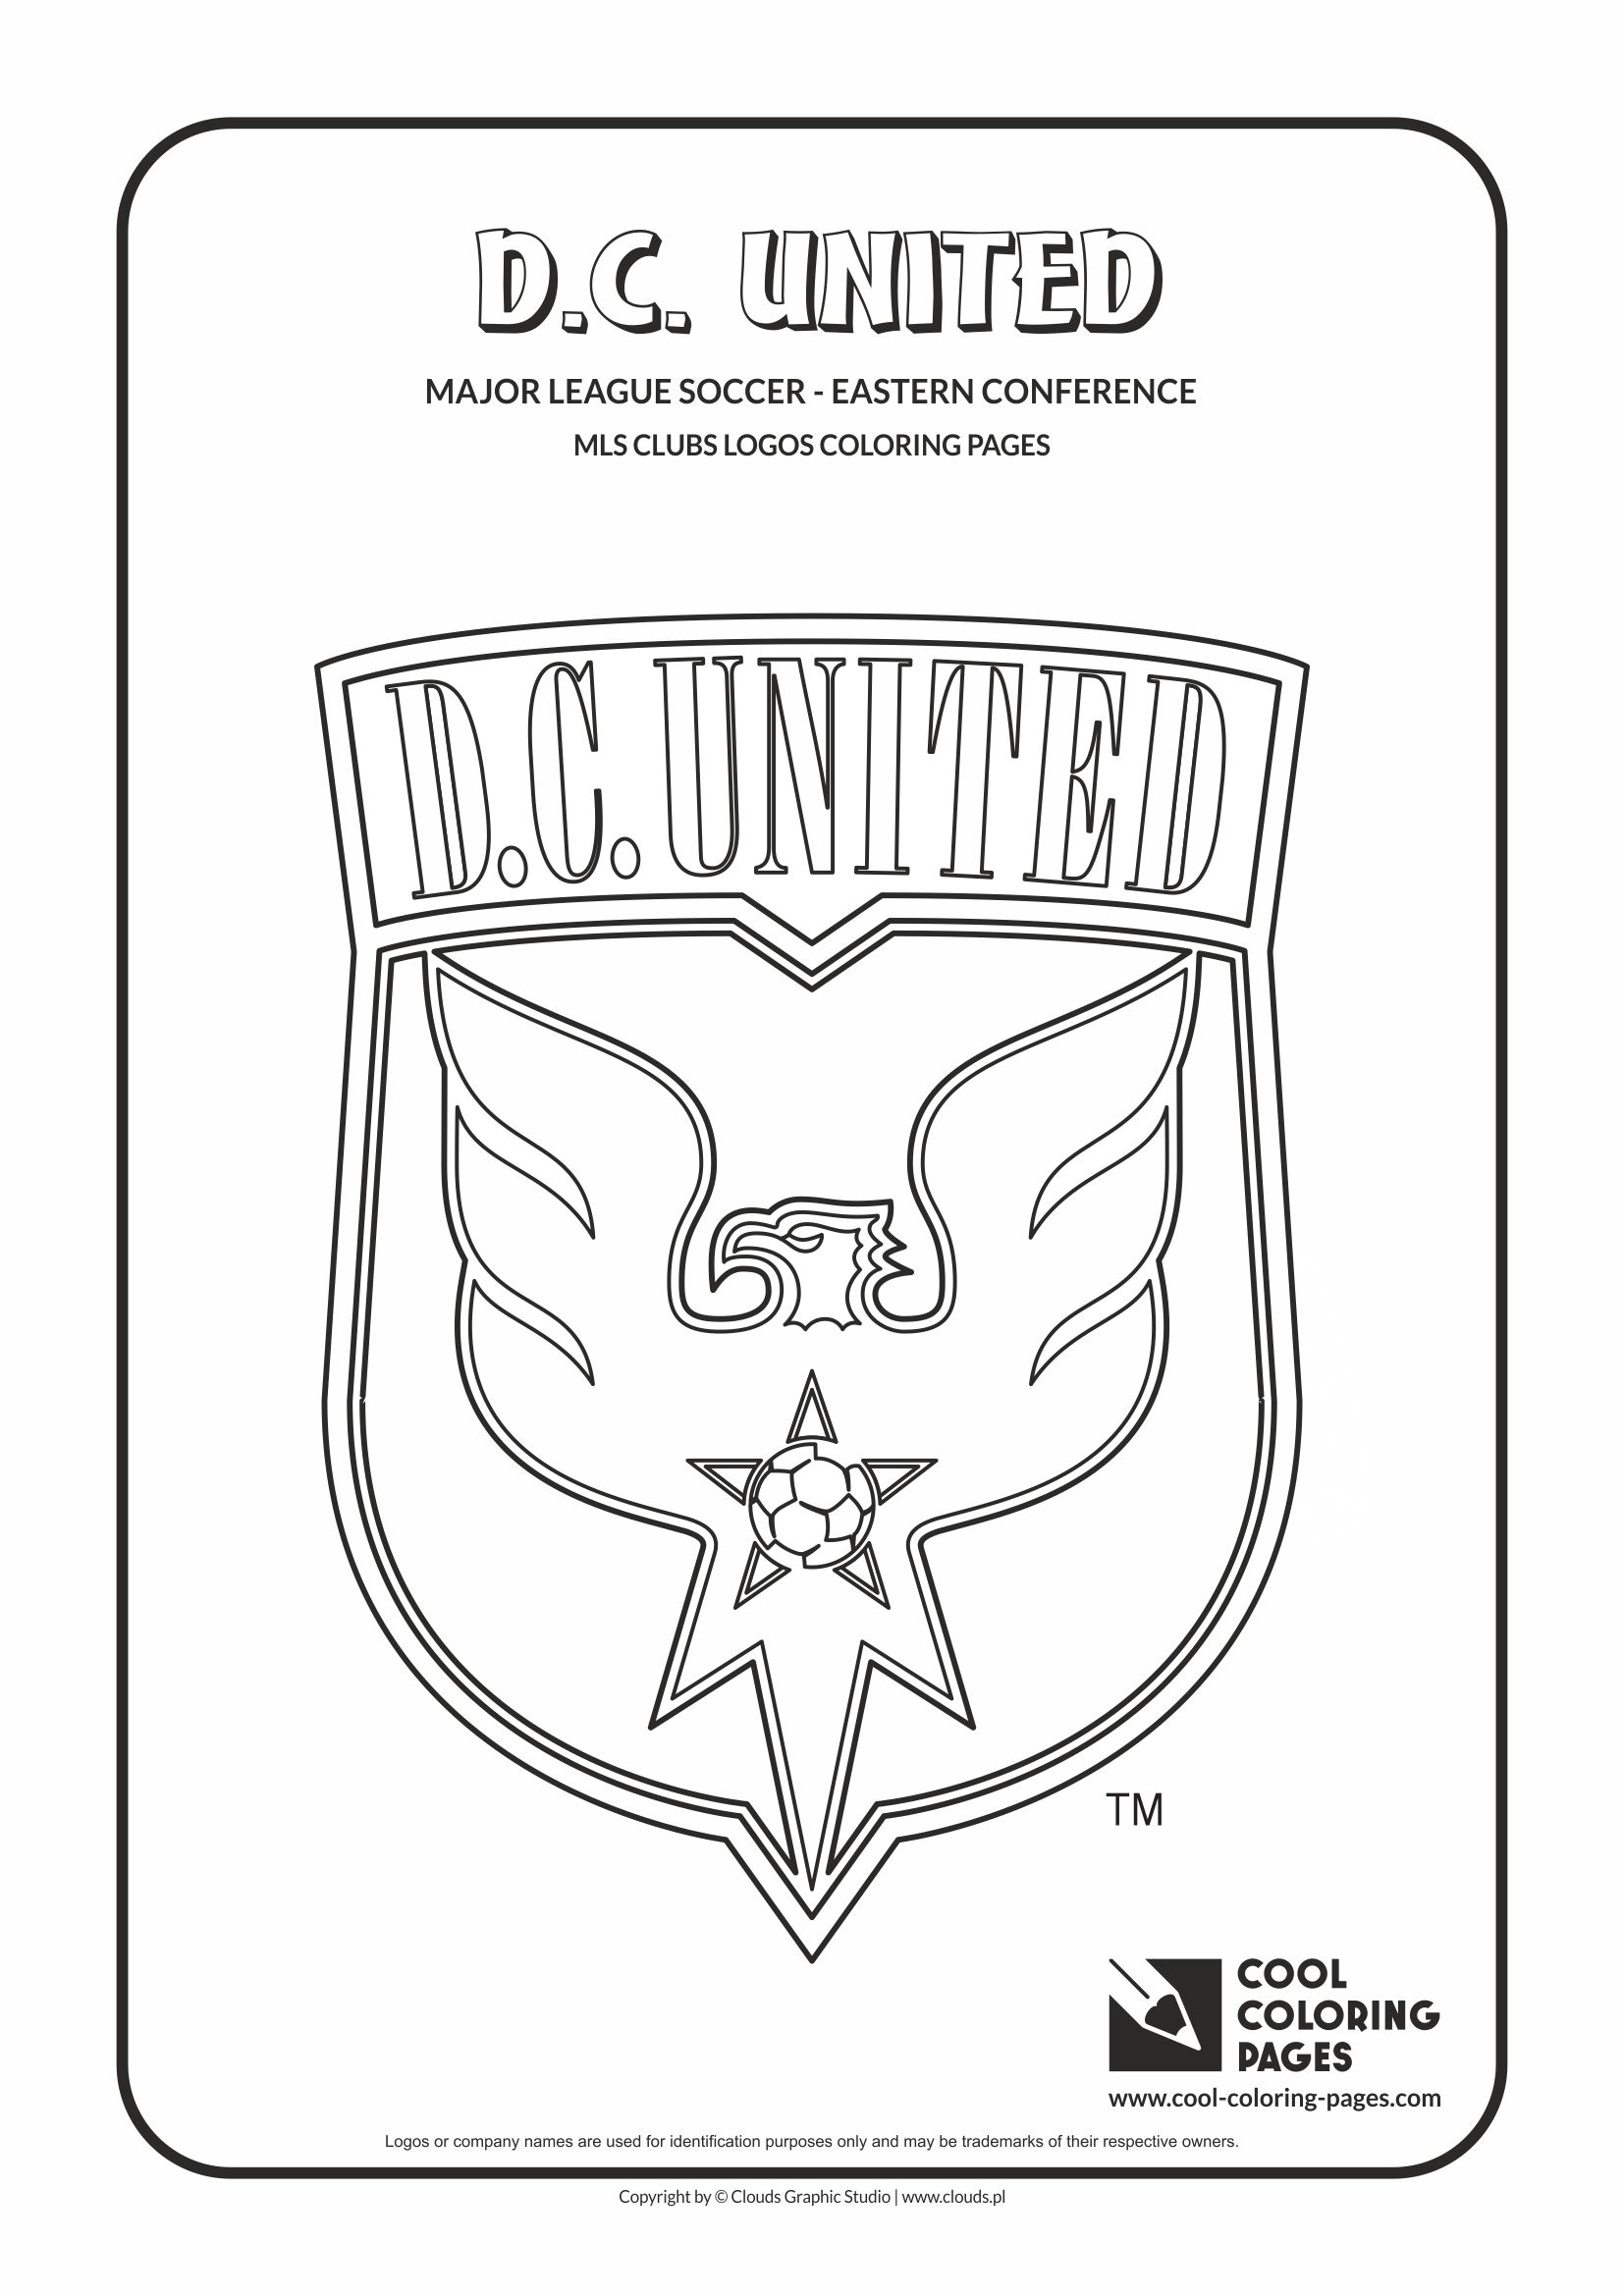 Cool Coloring Pages - Major League Soccer Logos - Eastern Conference / D.C. United logo / Coloring page with D.C. United logo